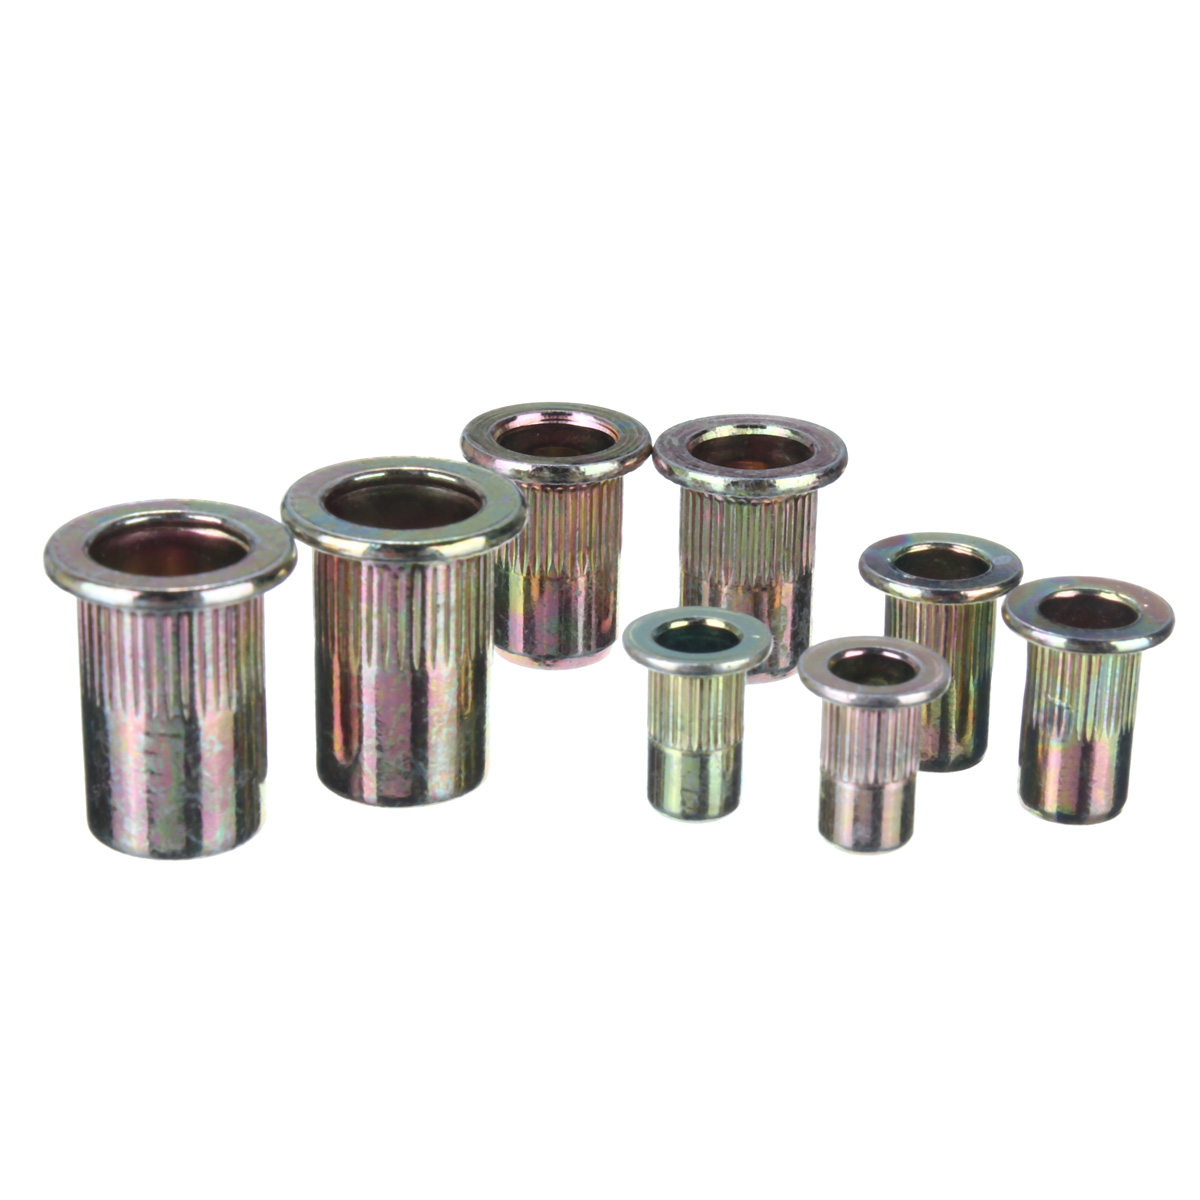 Pcs mixed pack threaded carbon steel rivet nut rivnut